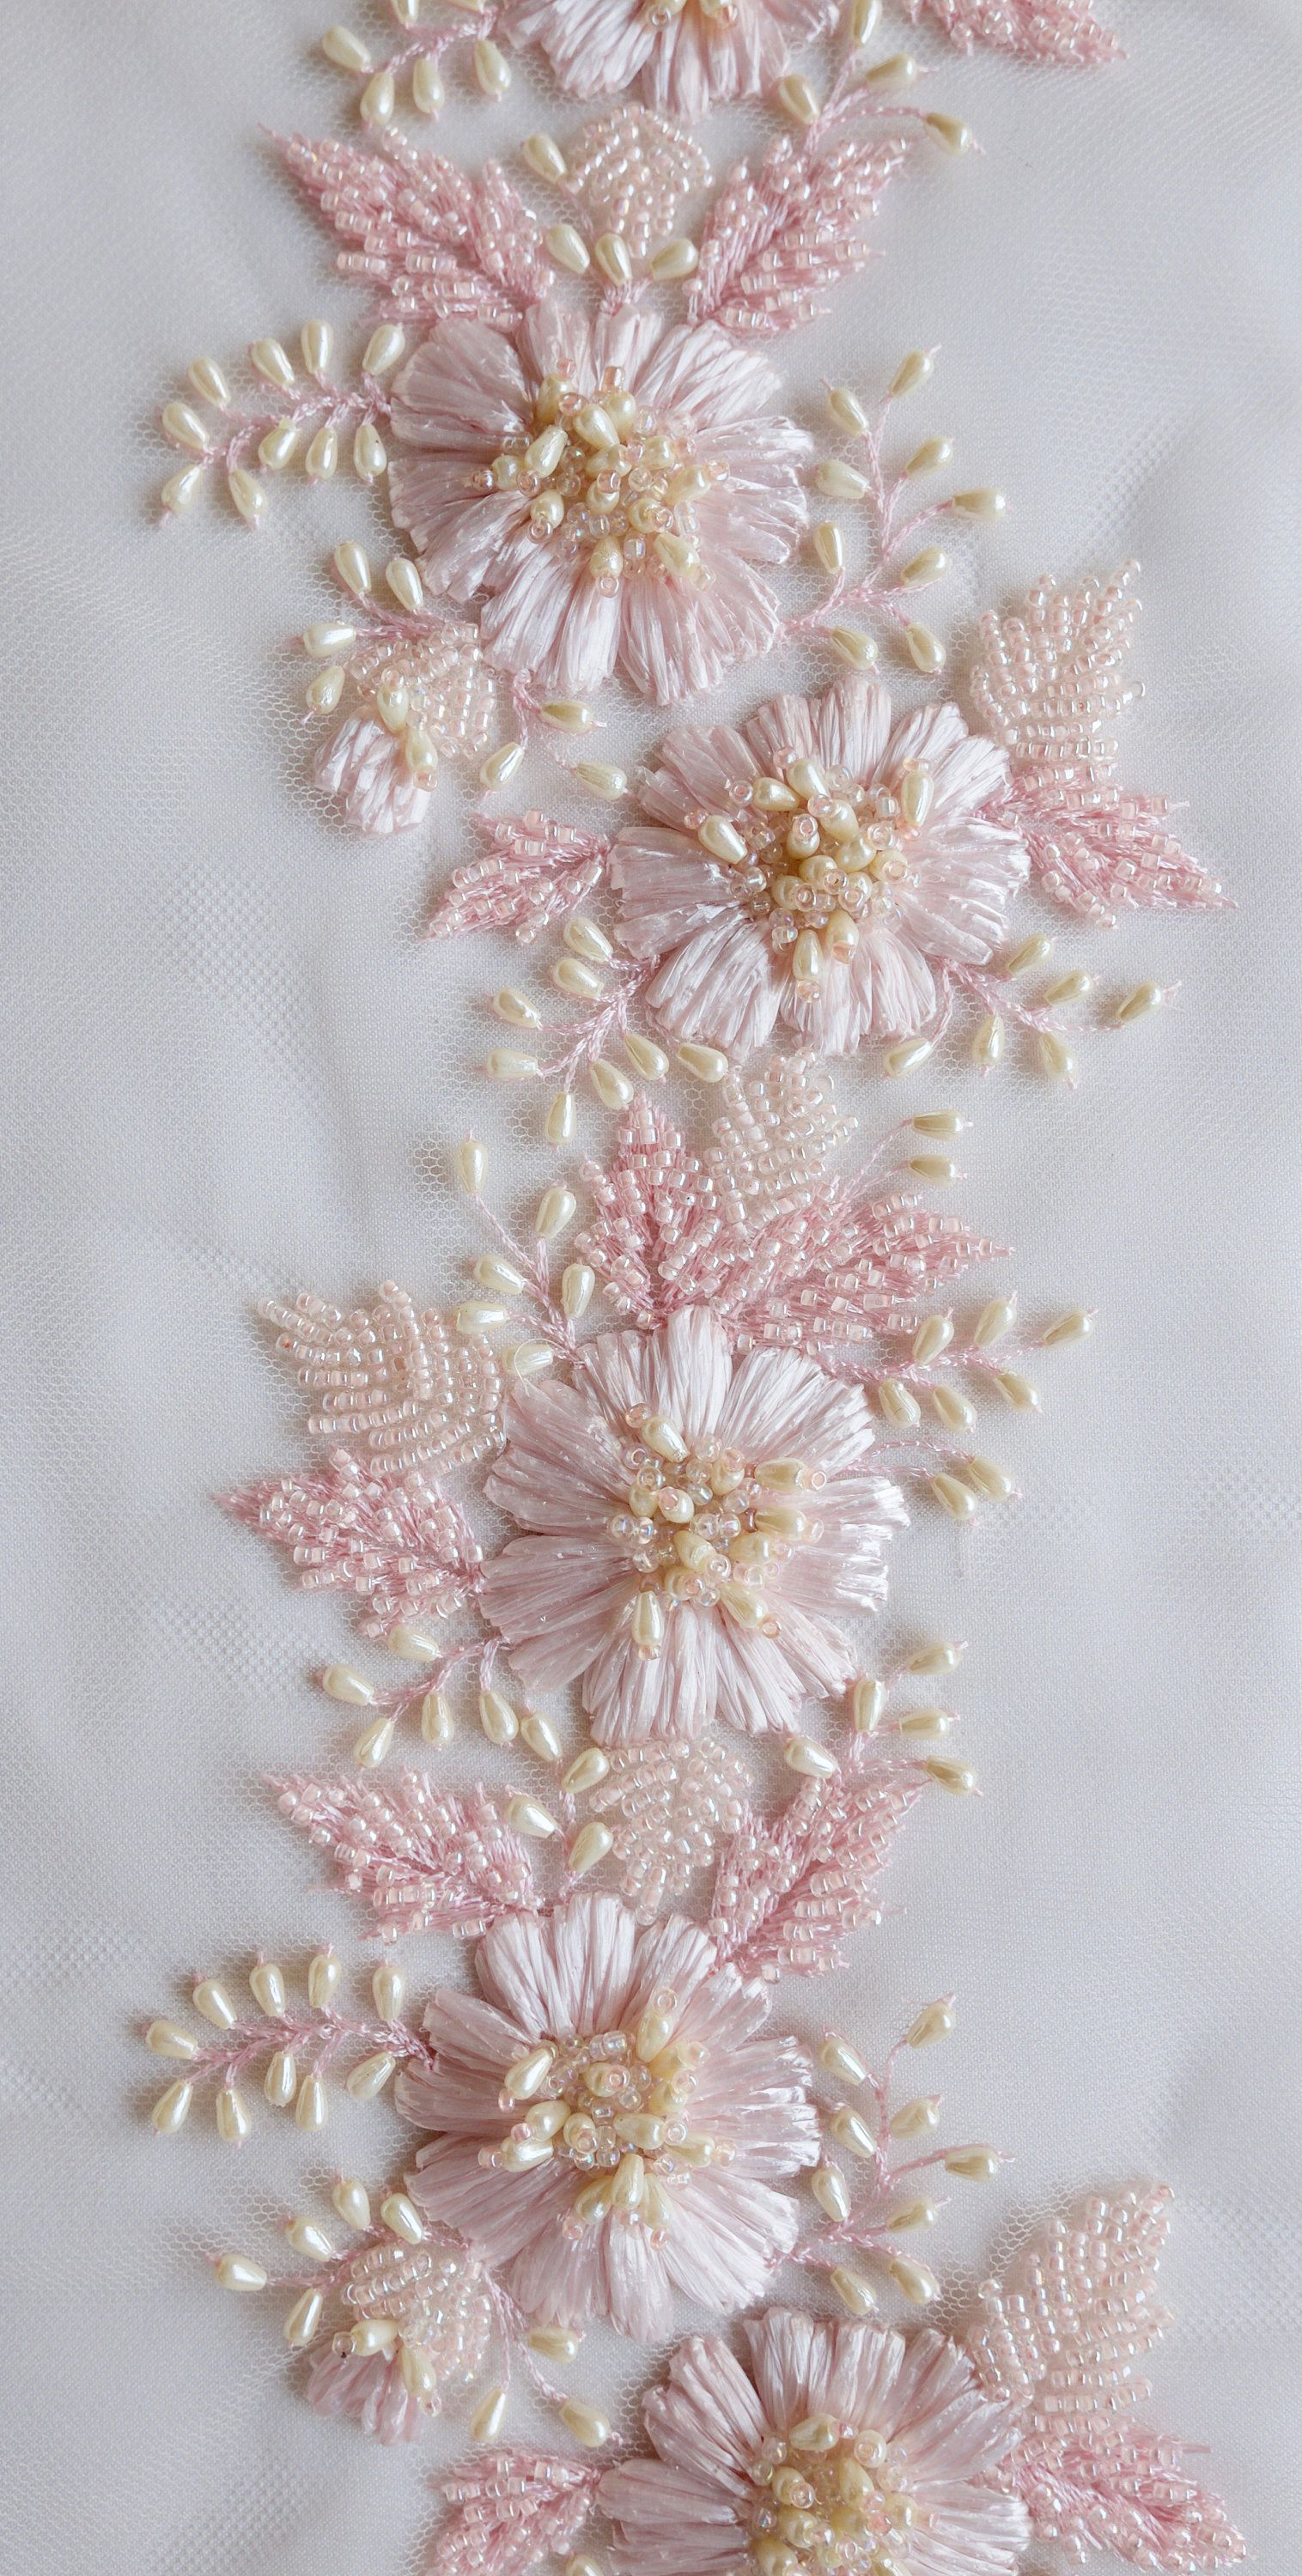 Handembroidered trim with pink raffia flowers and dropshaped